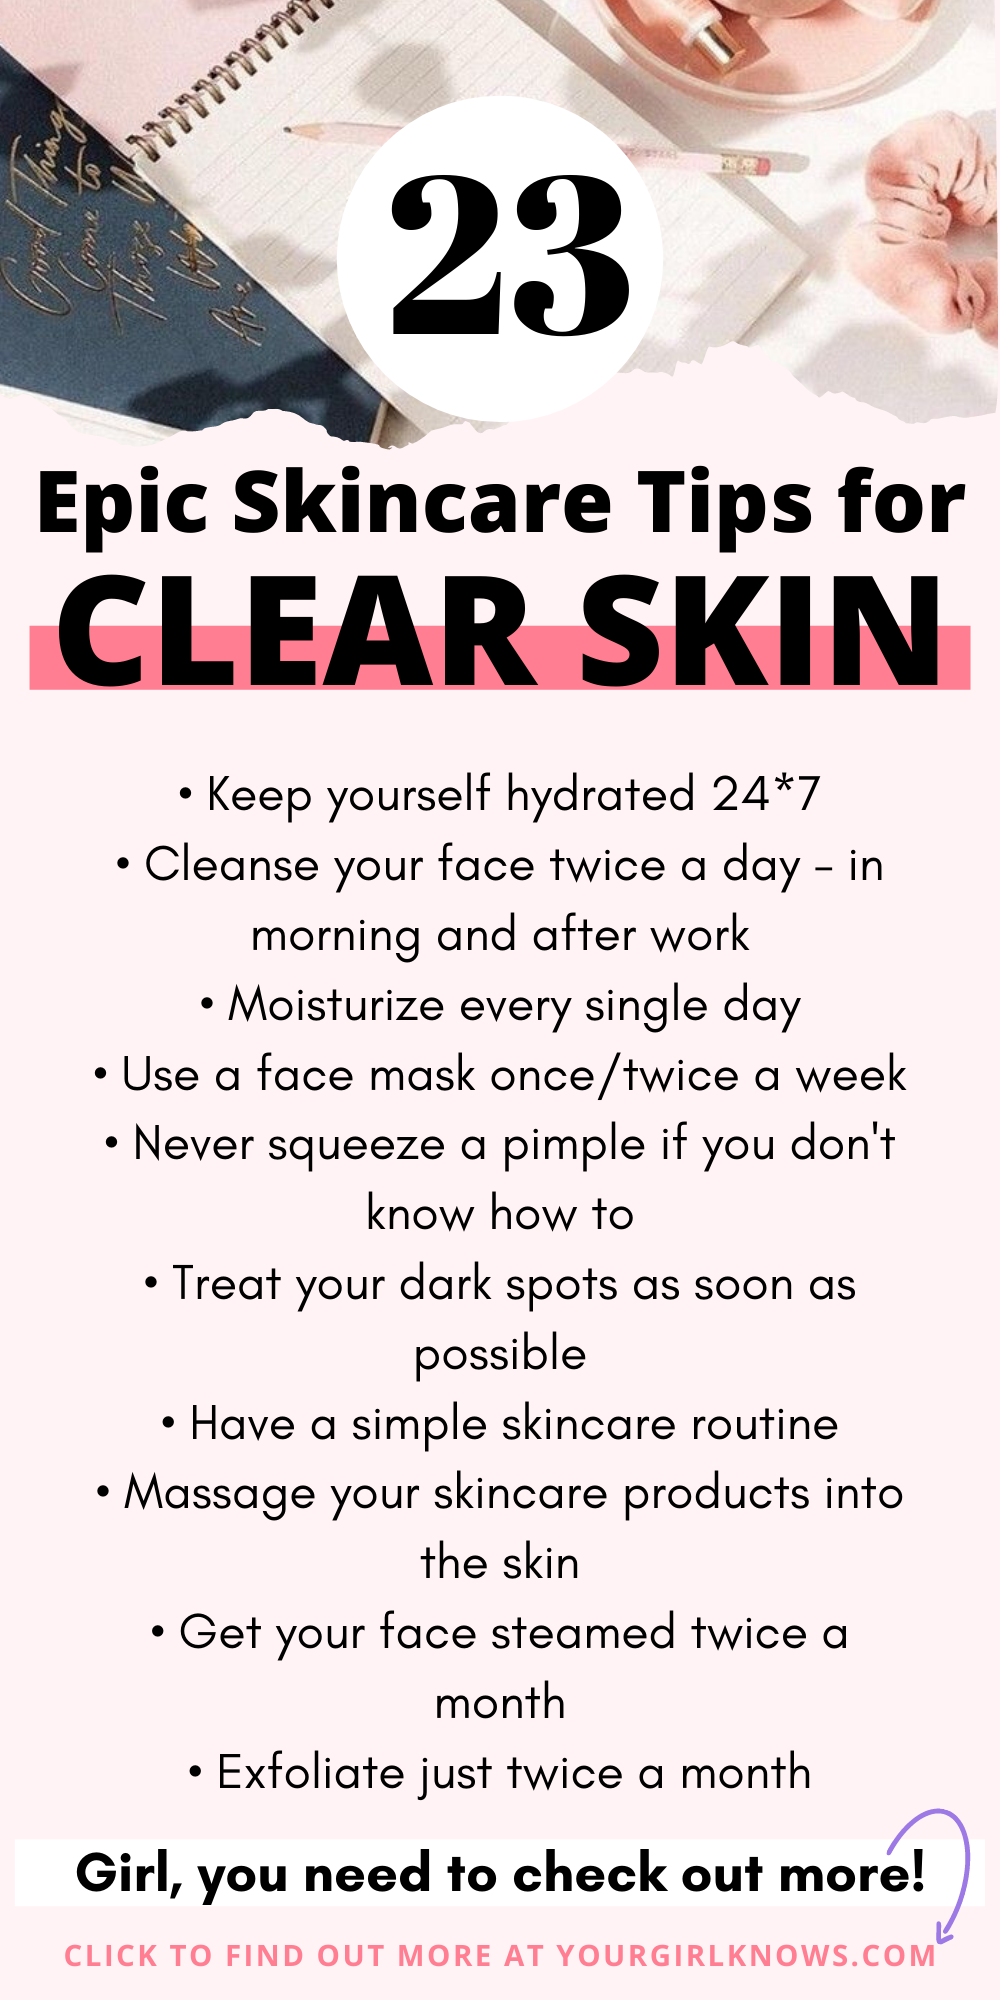 9 BEST SKINCARE TIPS FOR ACNE - YOUR GIRL KNOWS  Skin care